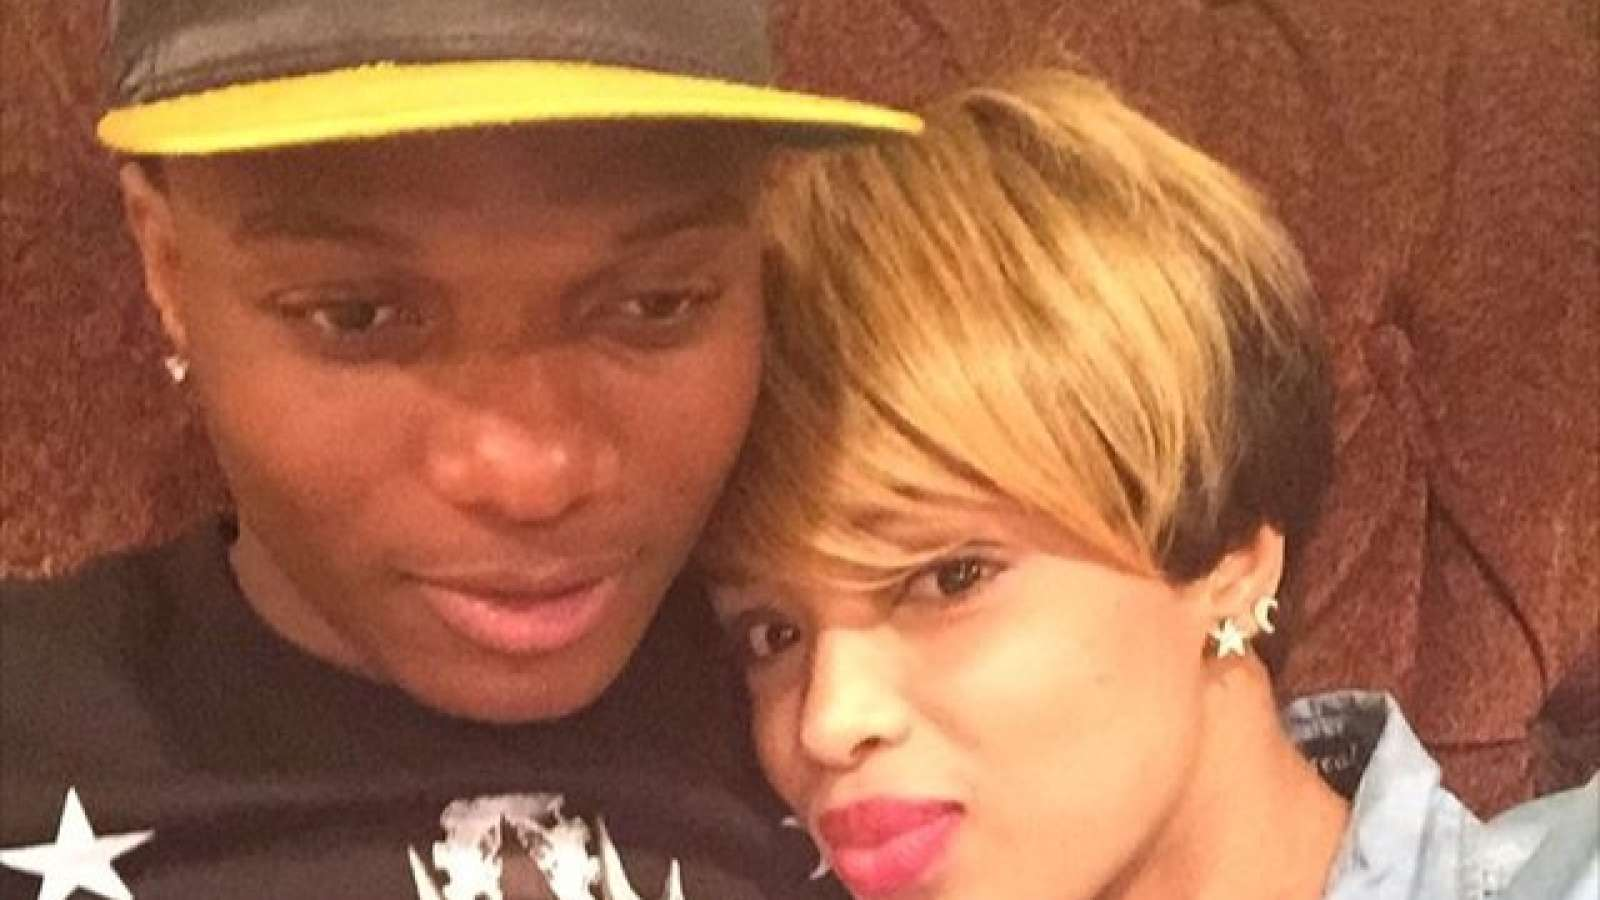 Wizkid's Alleged Baby mama Opens New Instagram Page for Their Son